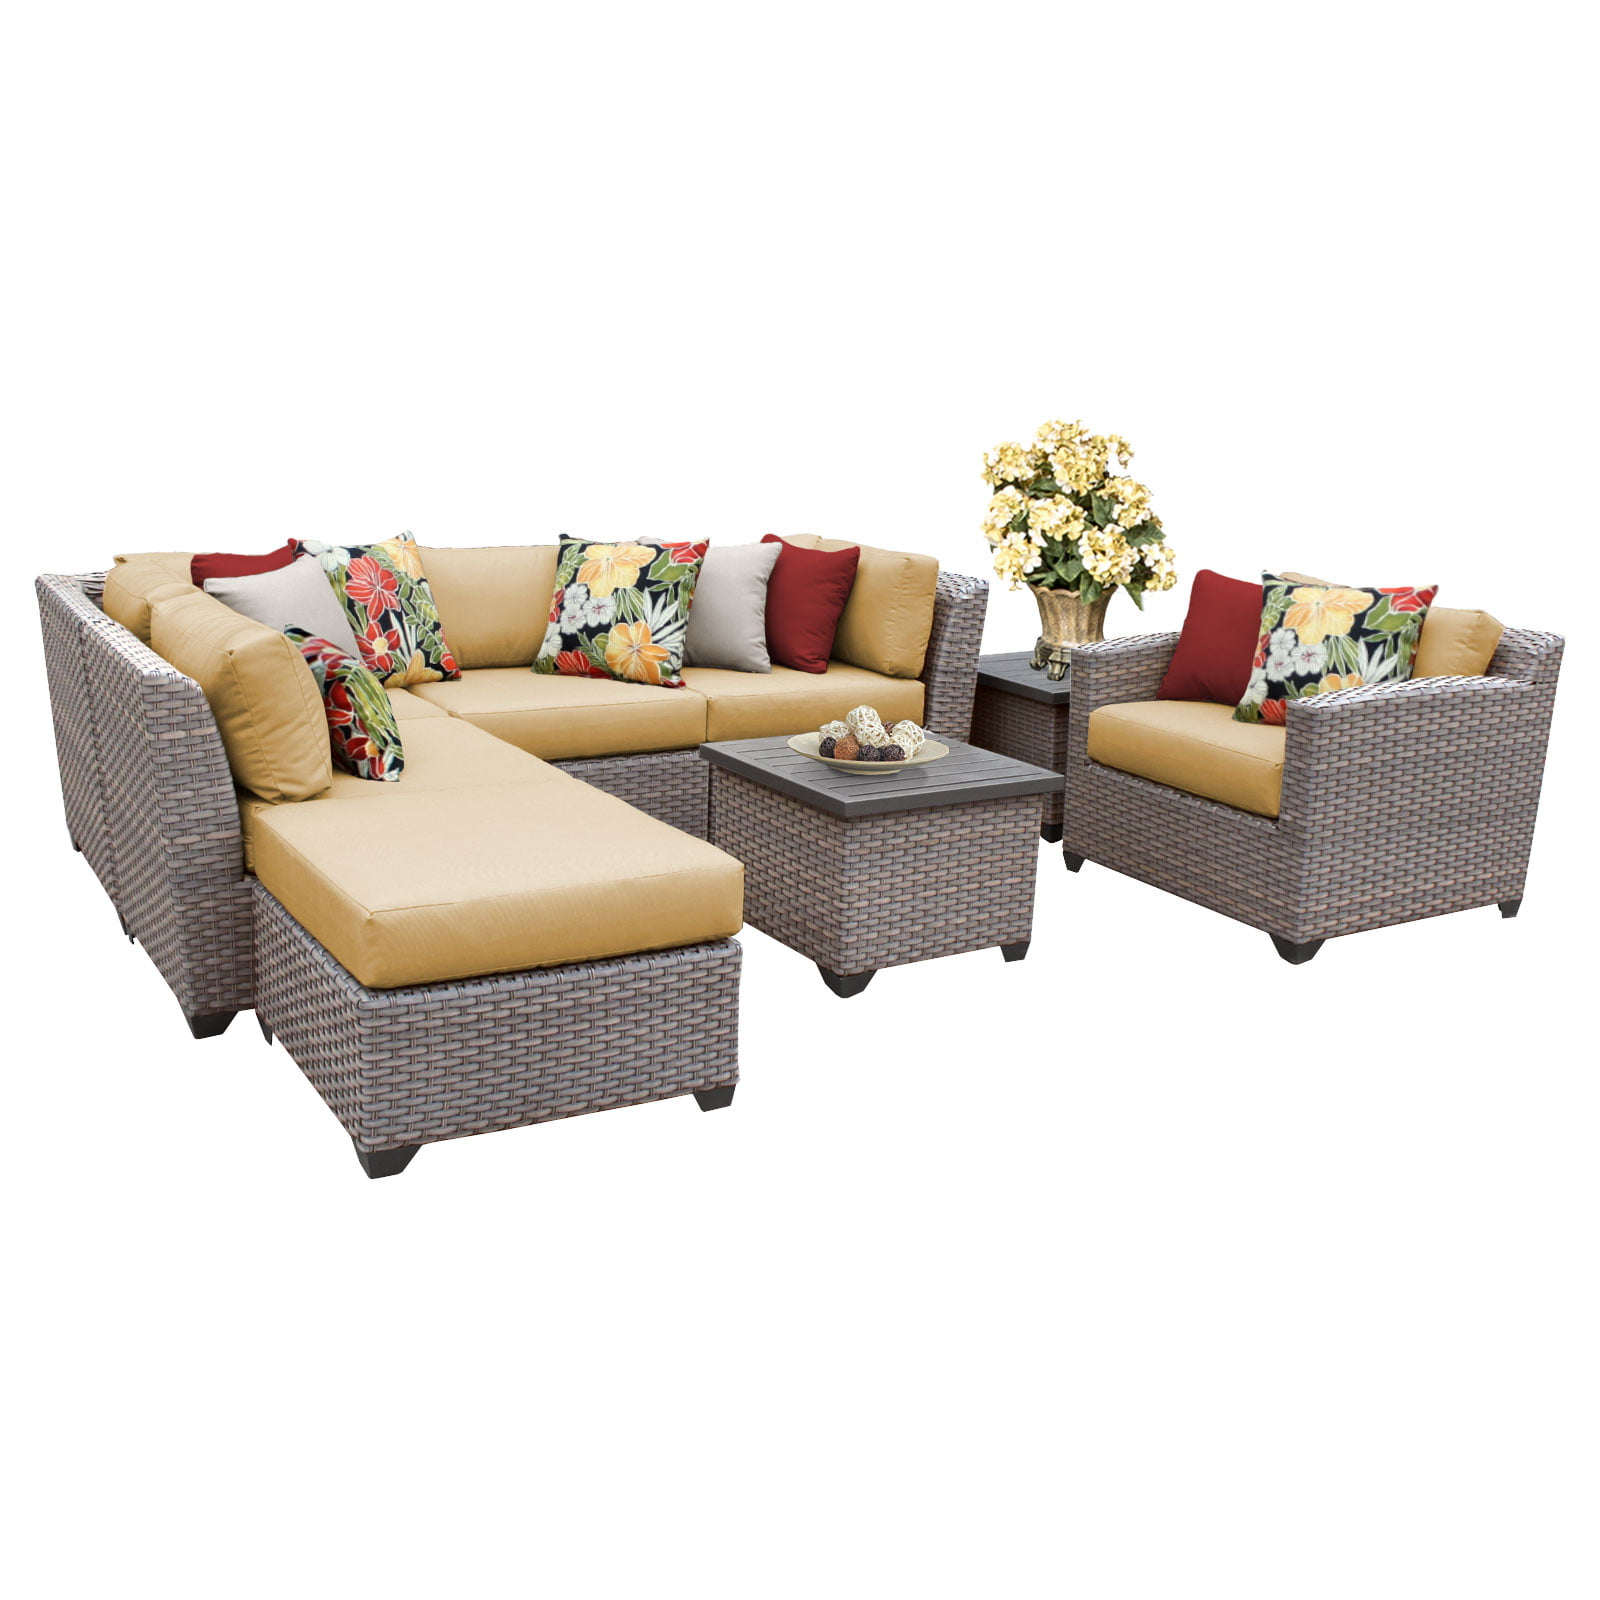 Catalina 8 Piece Outdoor Wicker Patio Furniture Set 08g by TK Classics